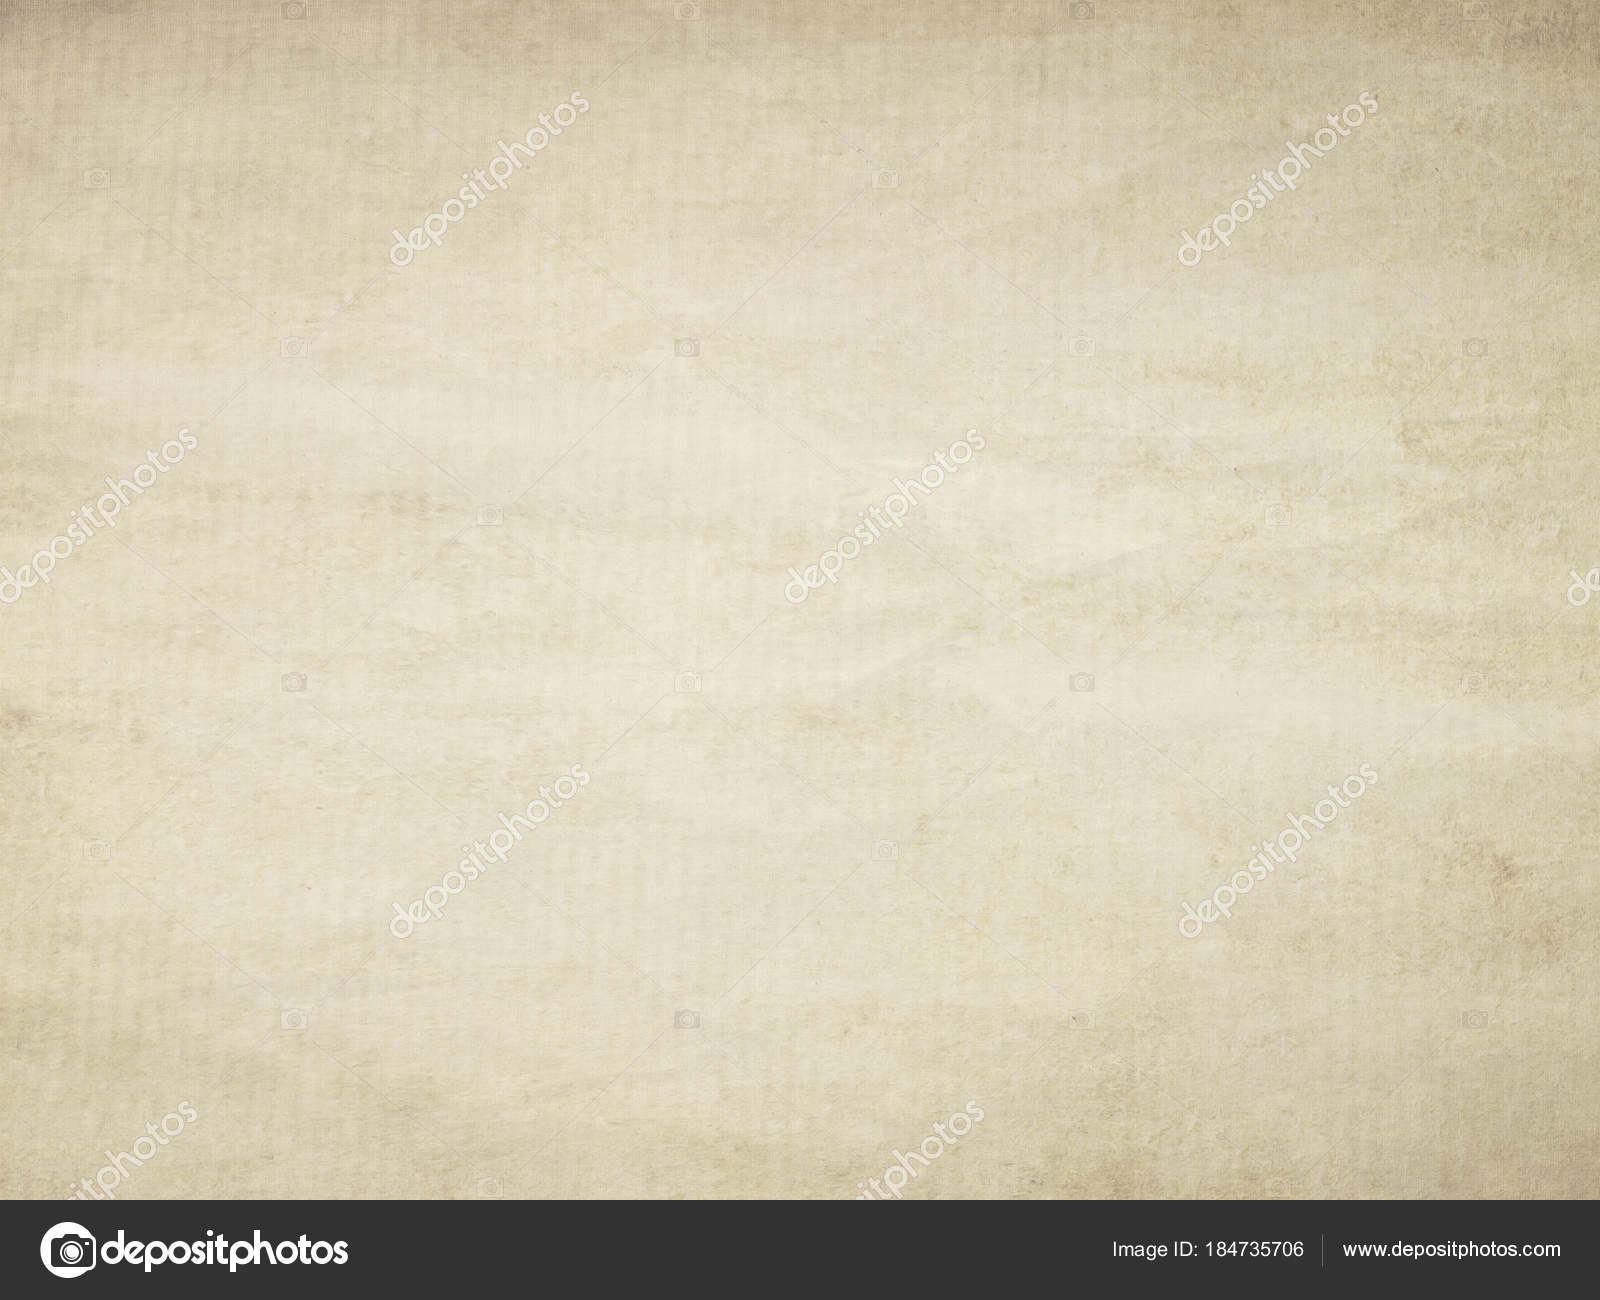 old shabby paper textures stock photo ilolab 184735706